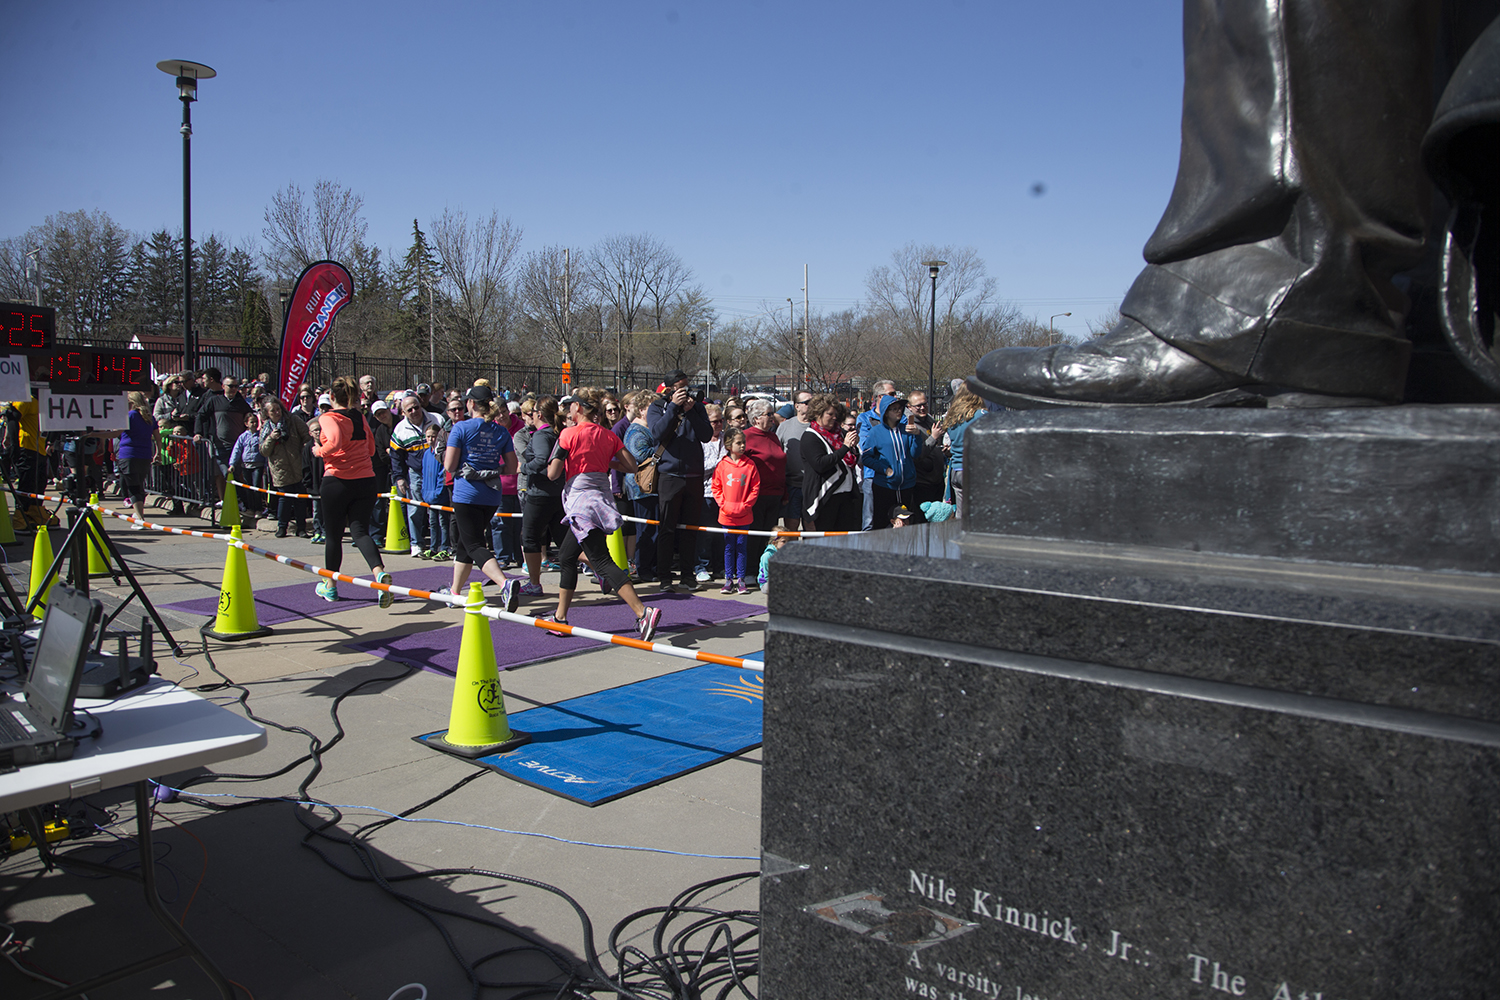 Runners approach the finish line during the River Run marathon at Kinnick Stadium on Sunday Apr. 29, 2018. Runners participated in a 5K beginning at Northwest Junior High School in Coralville and ending by Kinnick, where runners could get refreshments and visit the field.